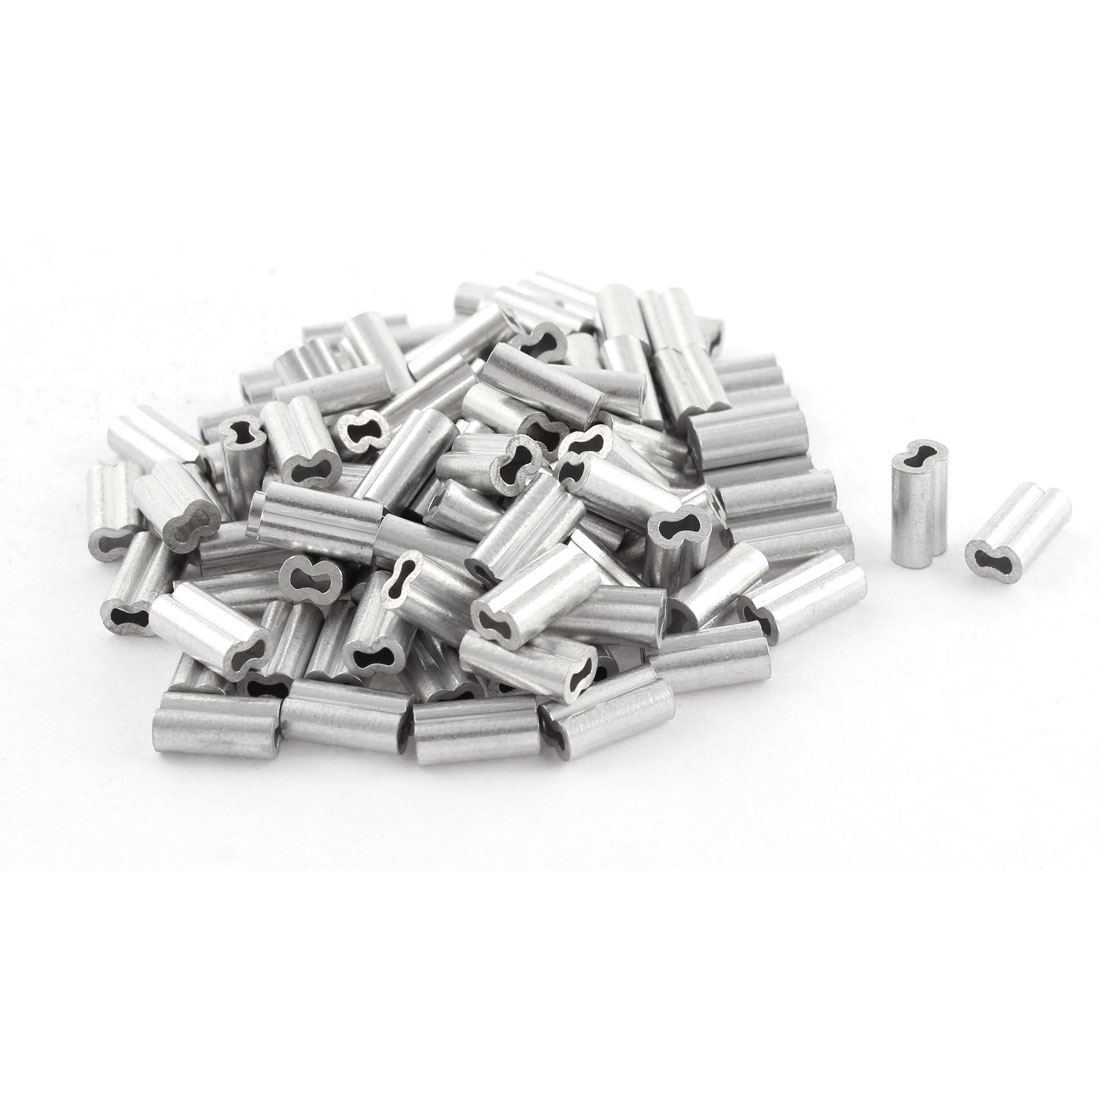 100pcs Silver Tone Aluminum Sleeve for 1.2mm Steel Wire Rope Swage Clip